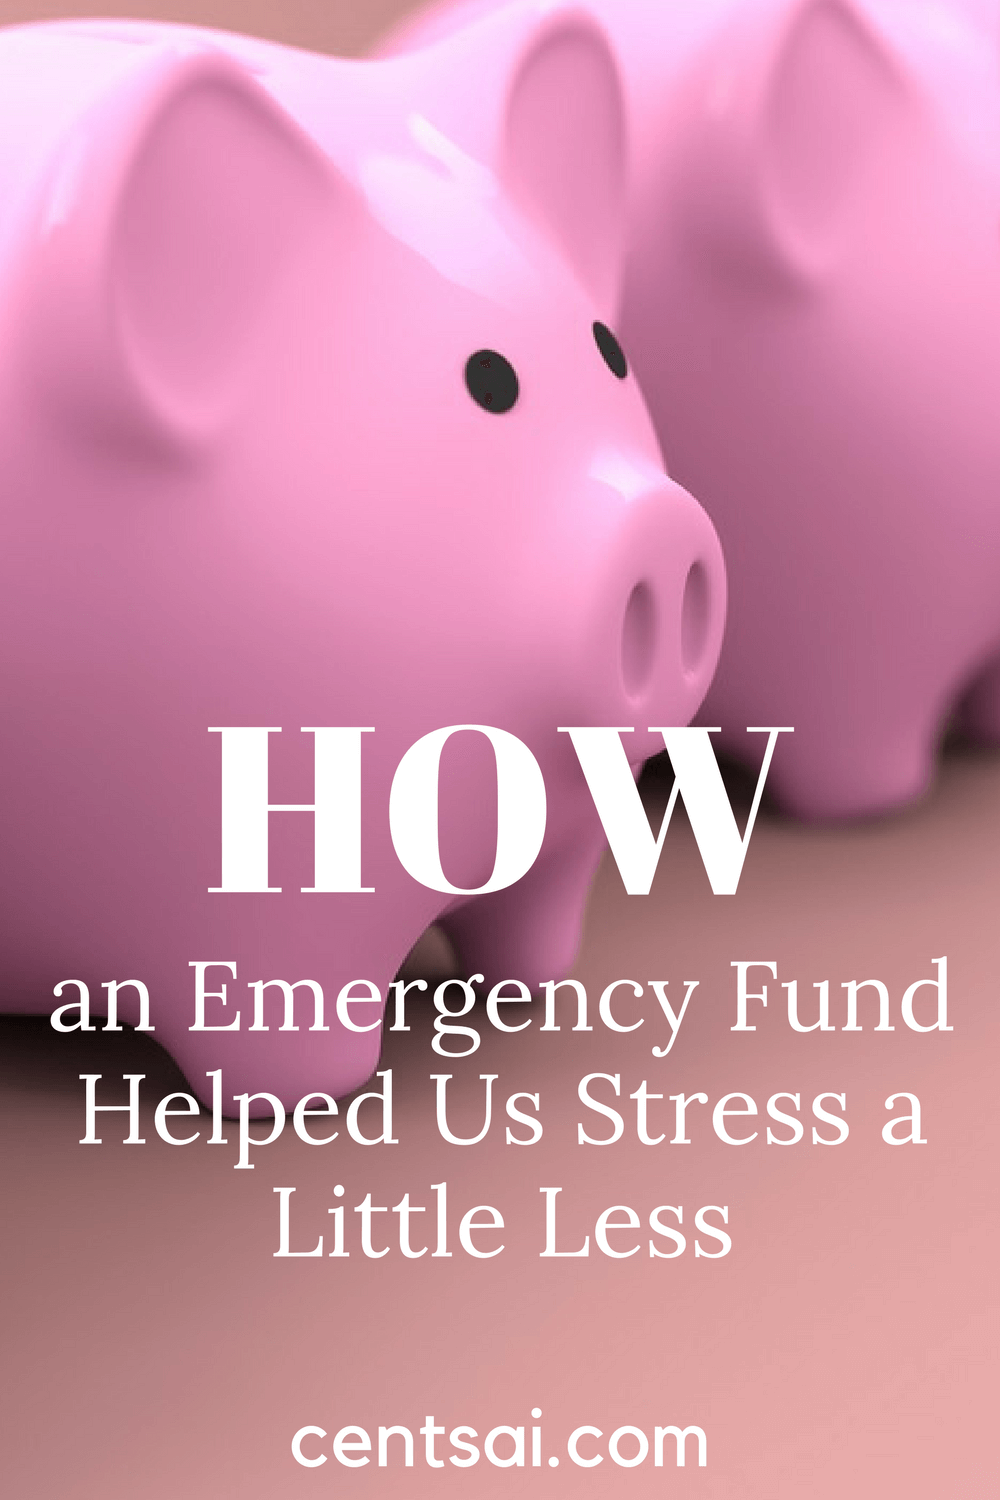 How an Emergency Fund Helped Us Stress a Little Less